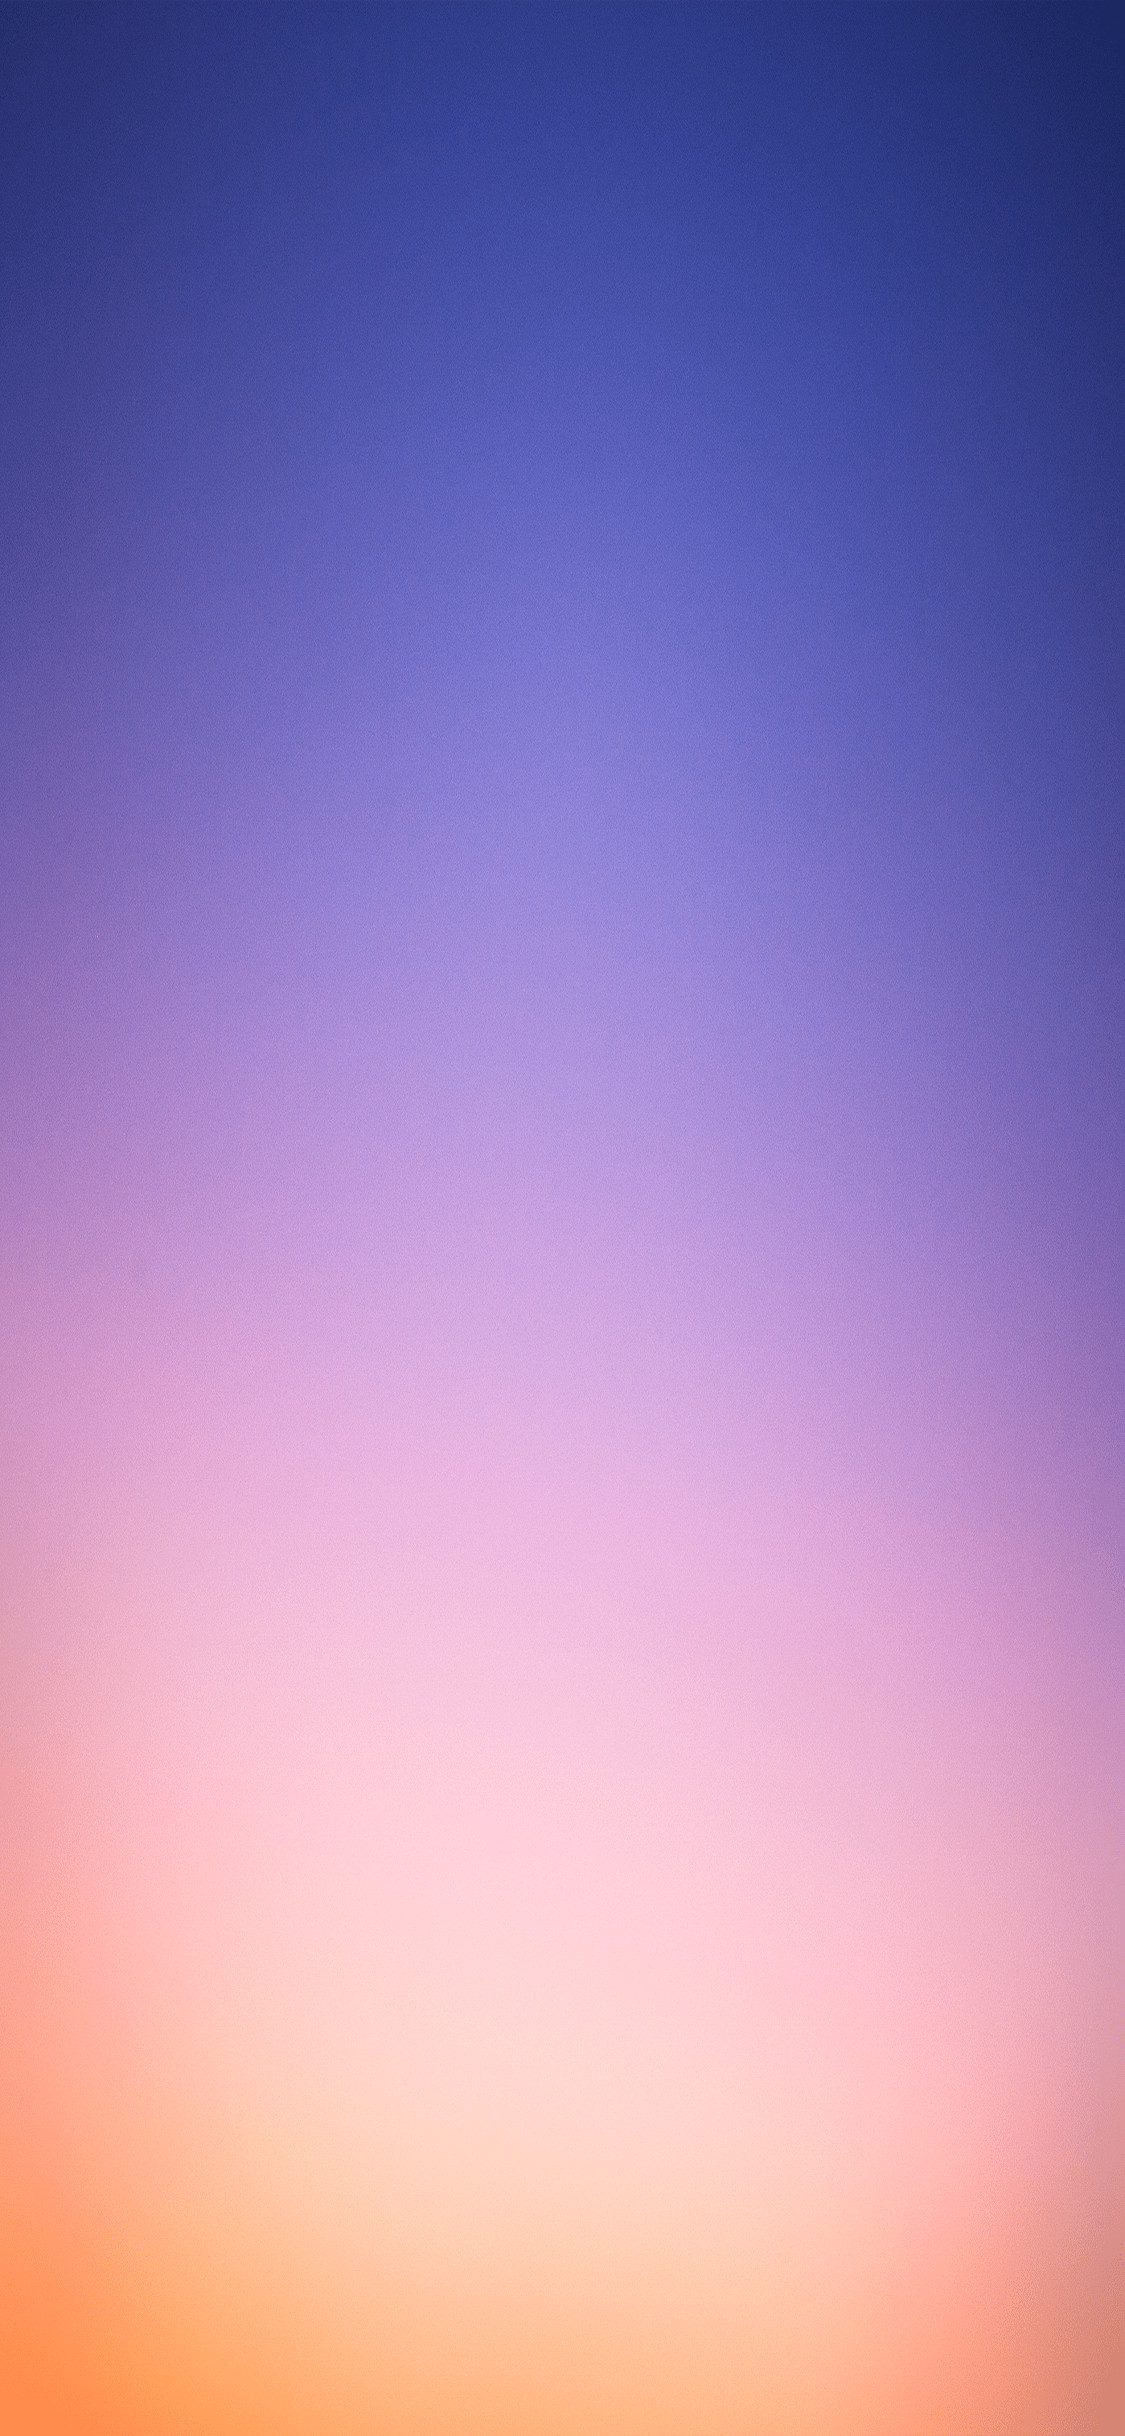 1125x2436 - IPhone Stills 7